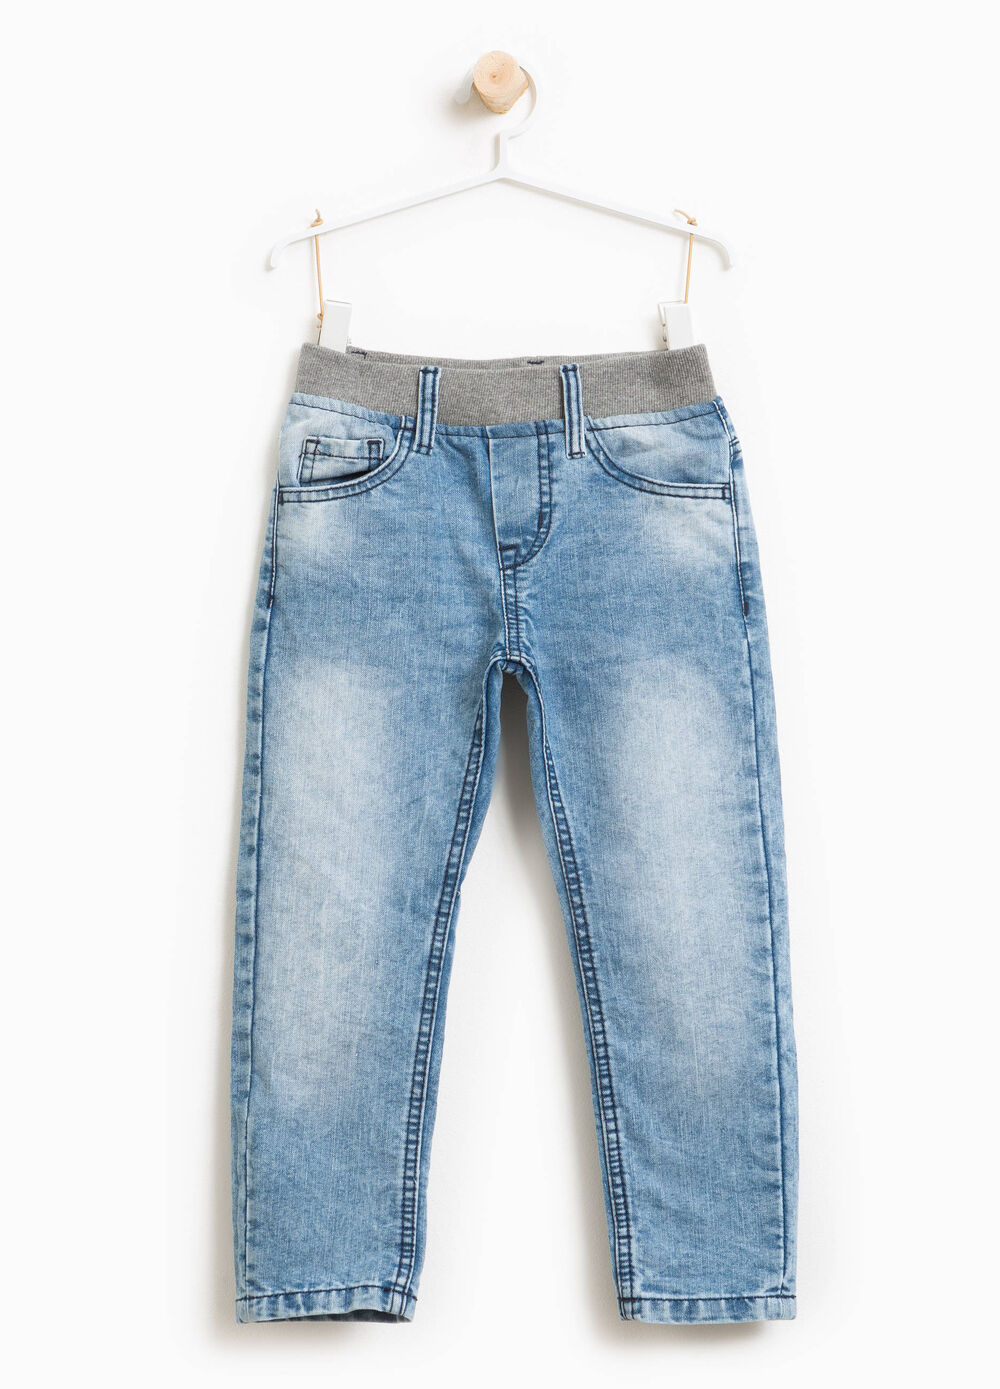 Misdyed jeans with fading